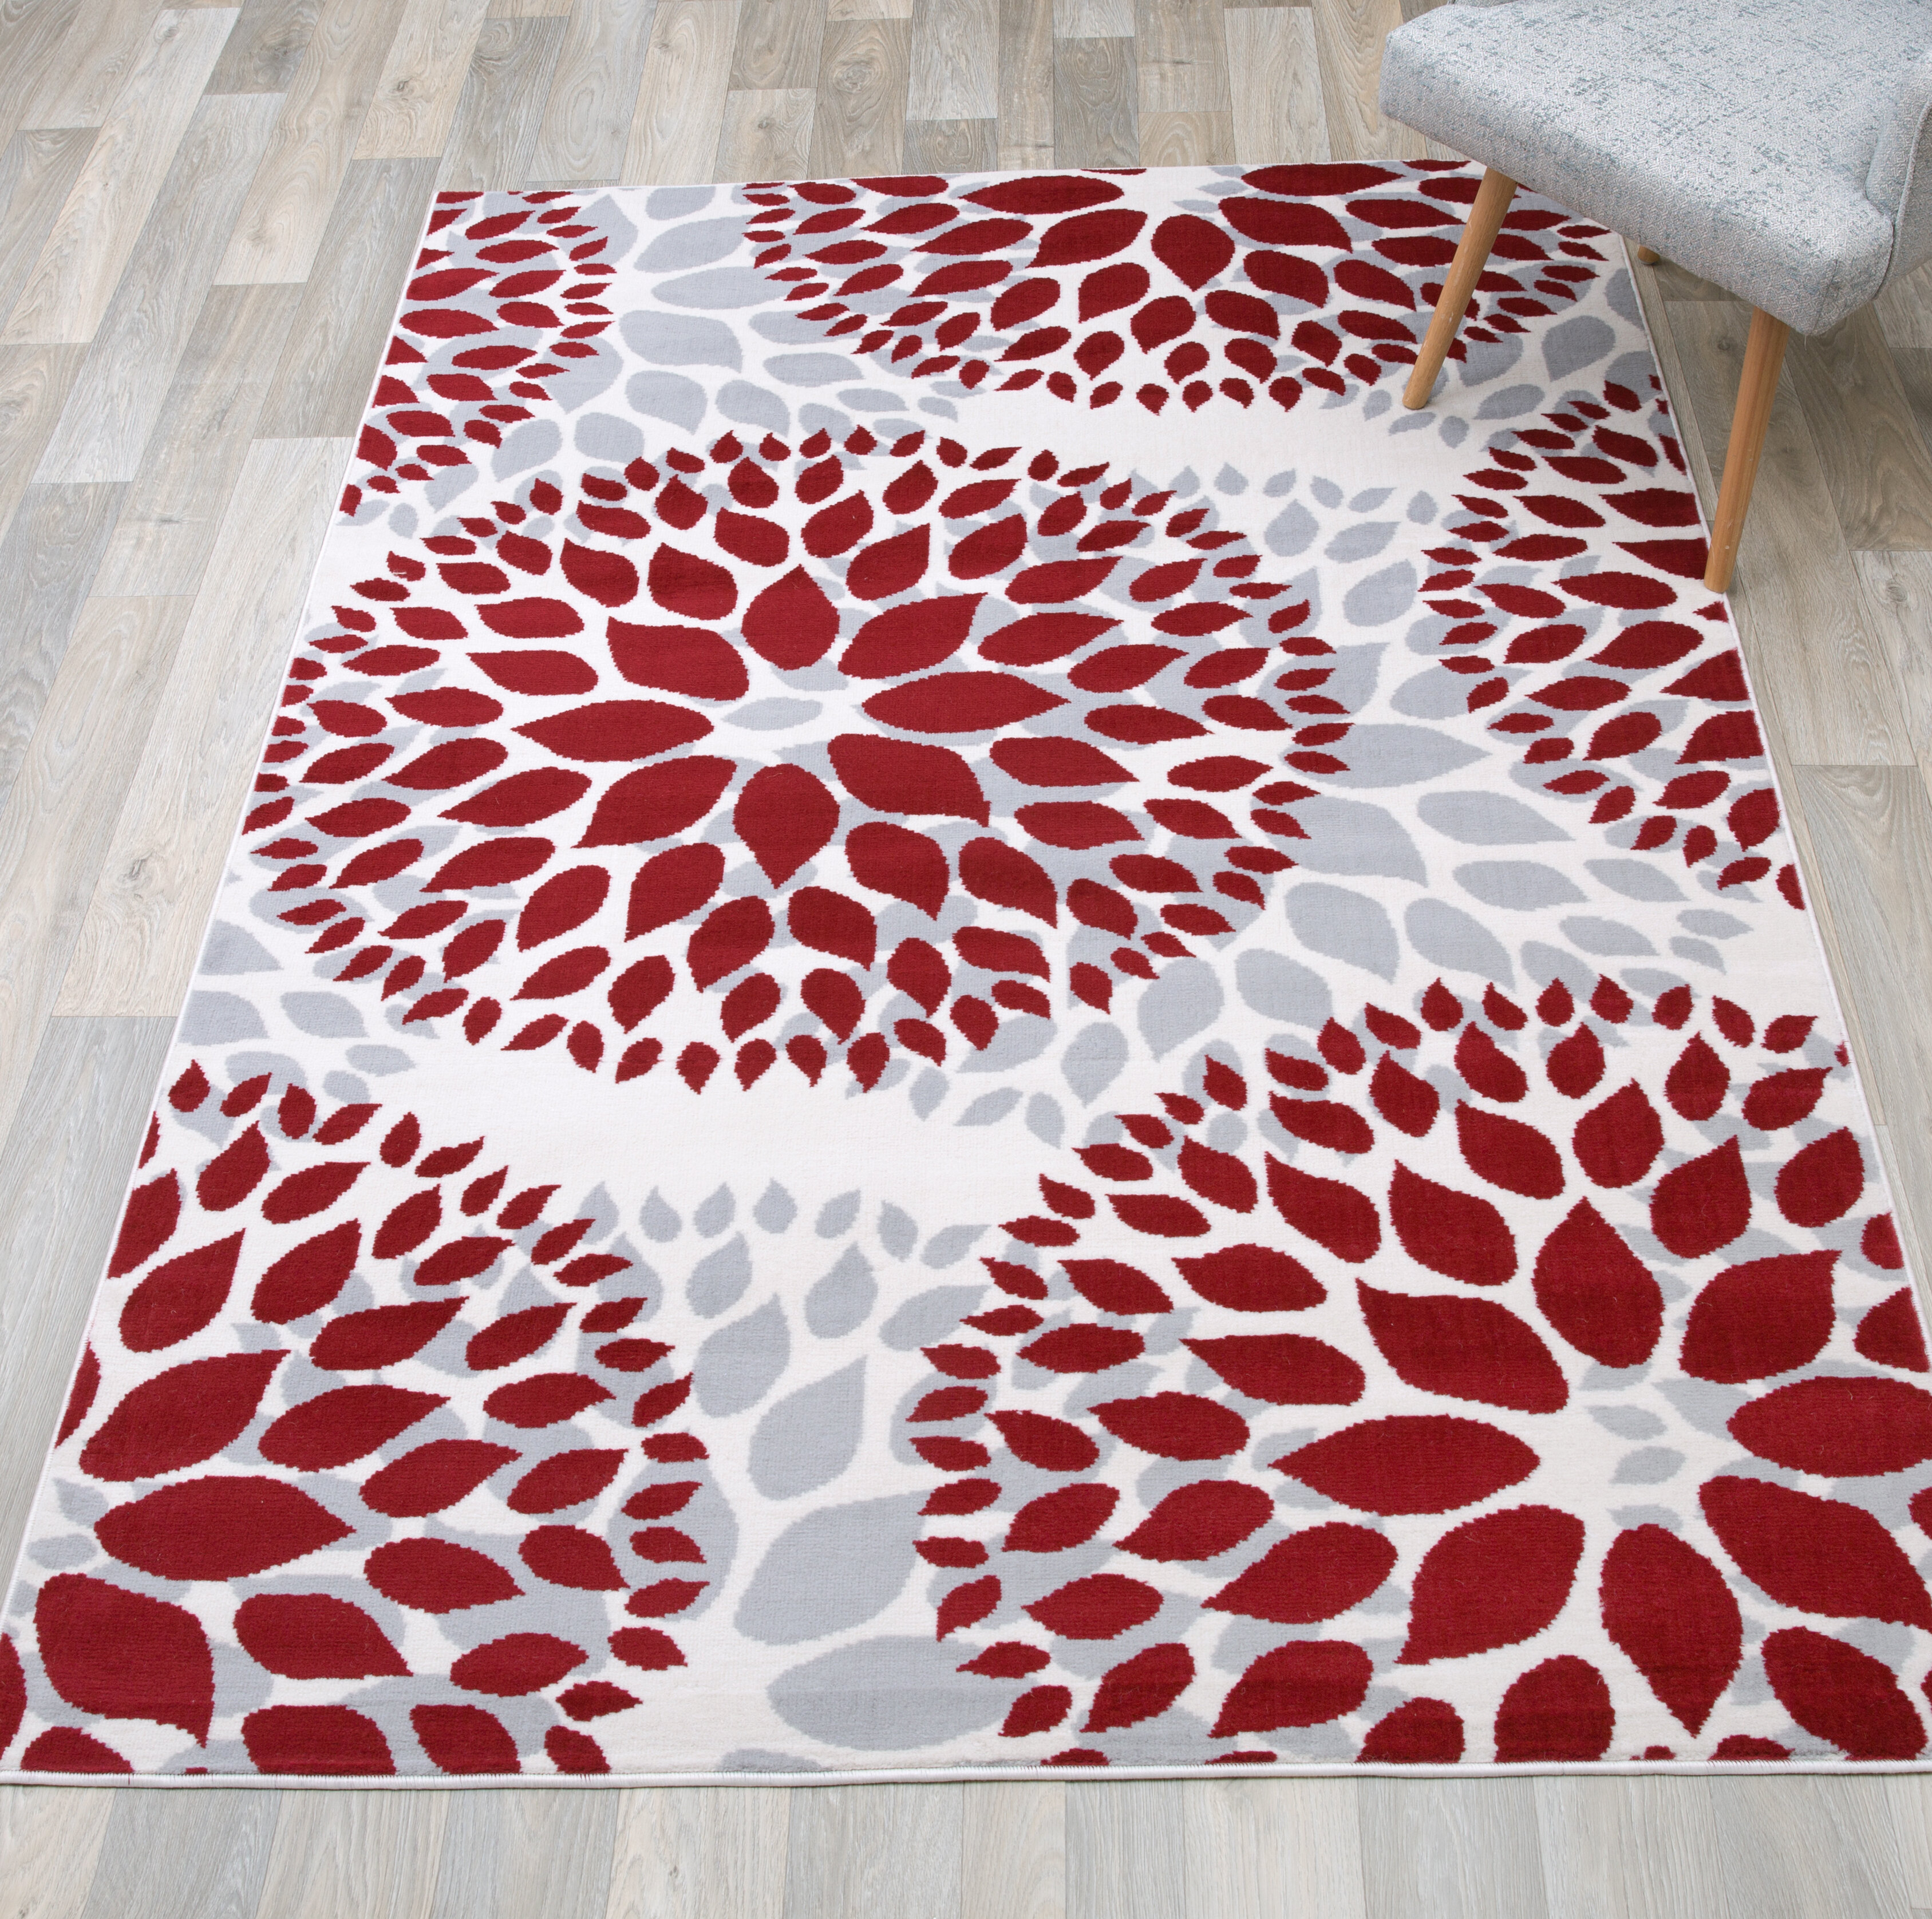 Round Floral Area Rugs Wayfair